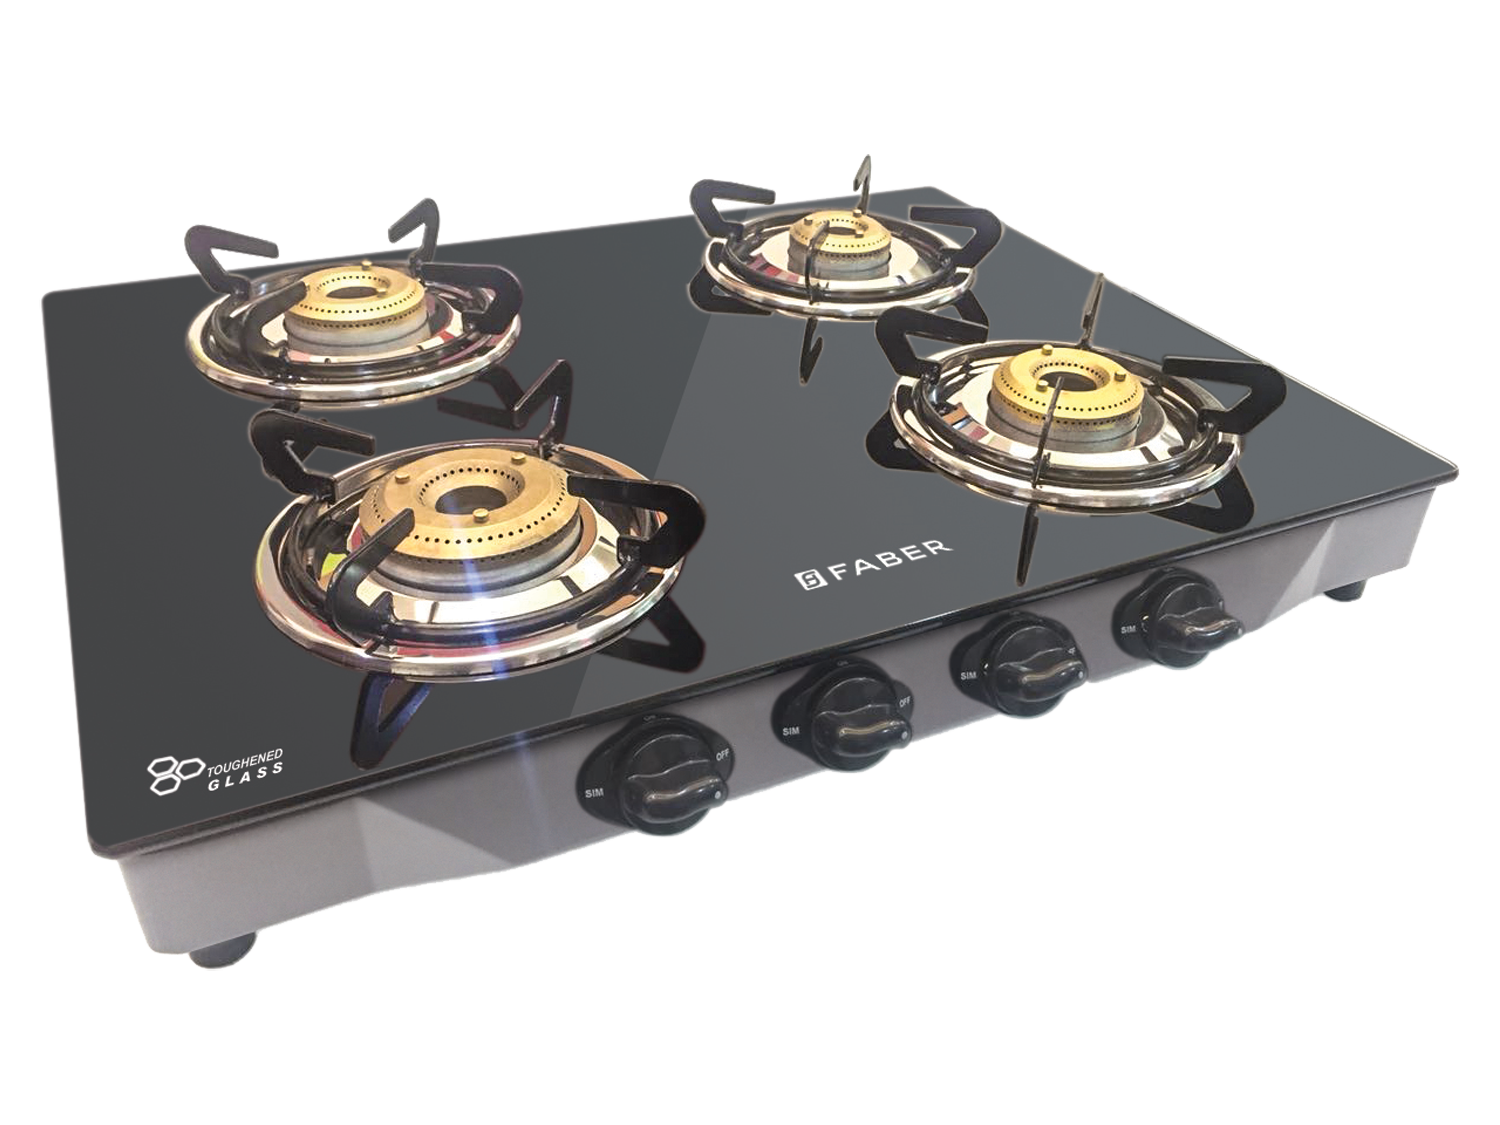 uploads gas stove gas stove PNG66 4